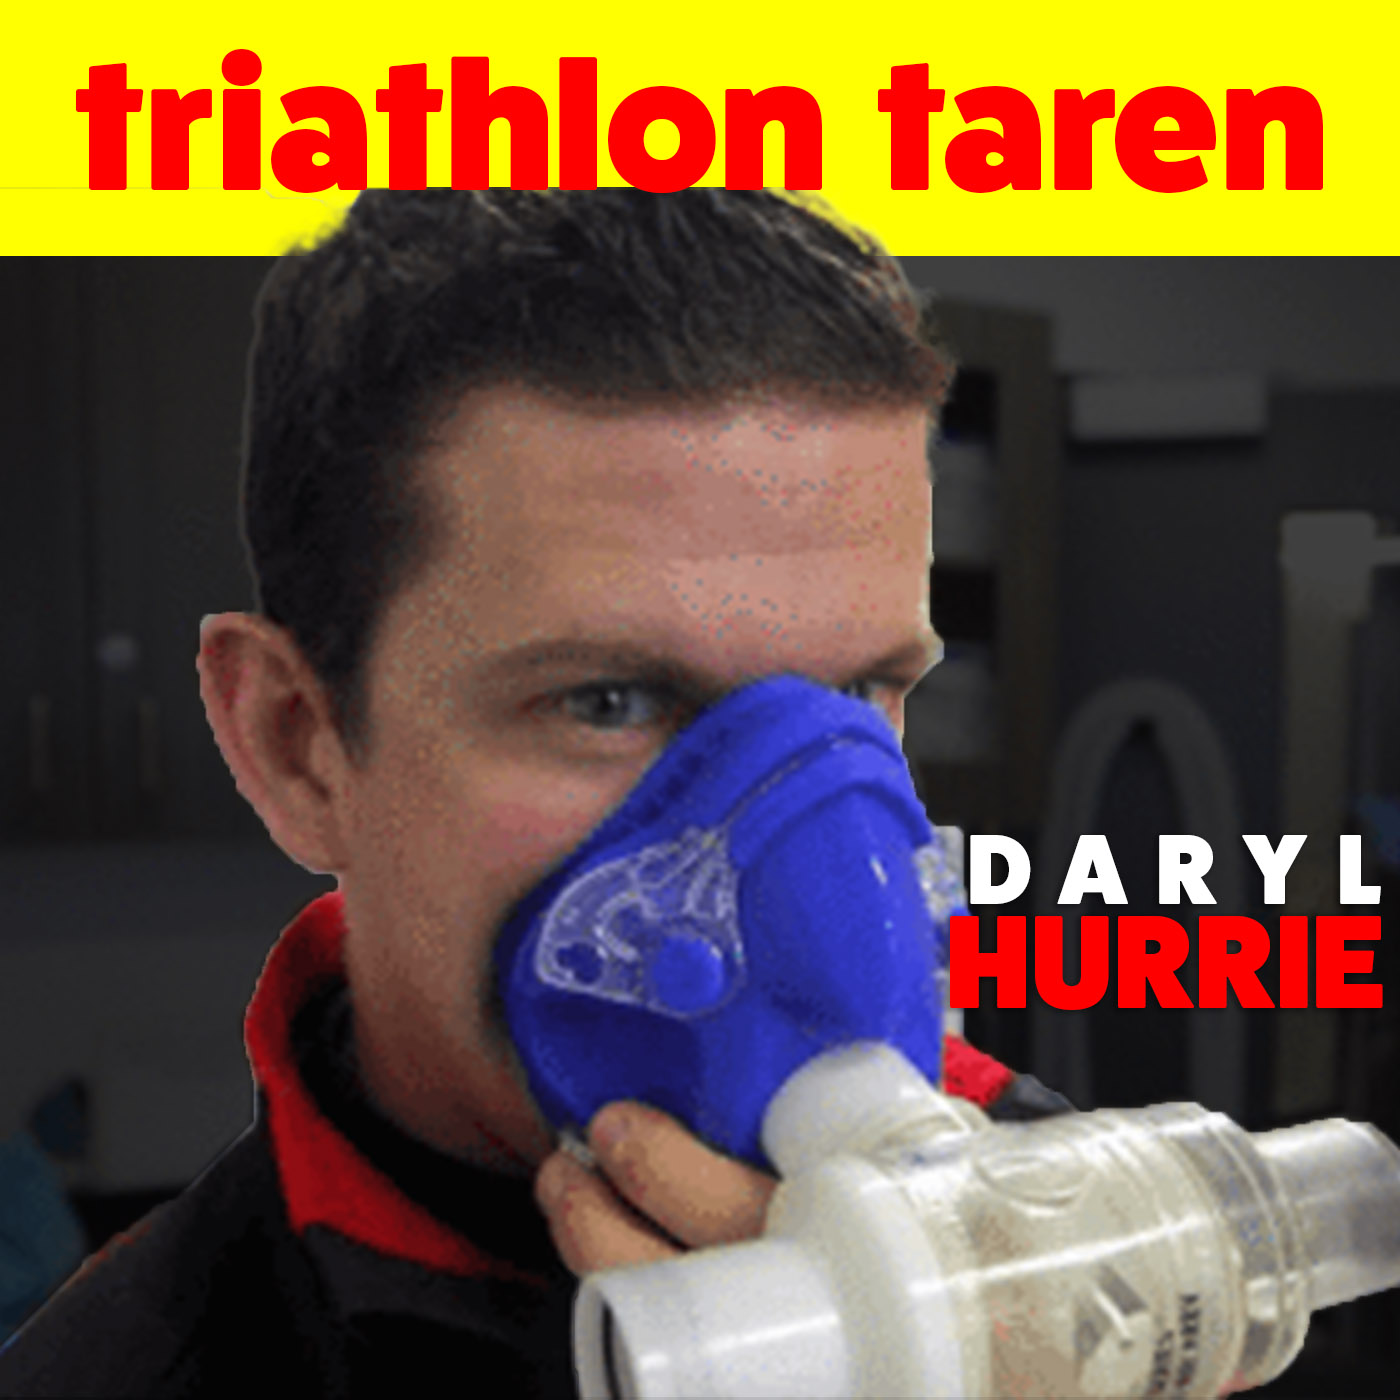 Daryl Hurrie: Canada's Mad Sports Scientist who creates Olympians